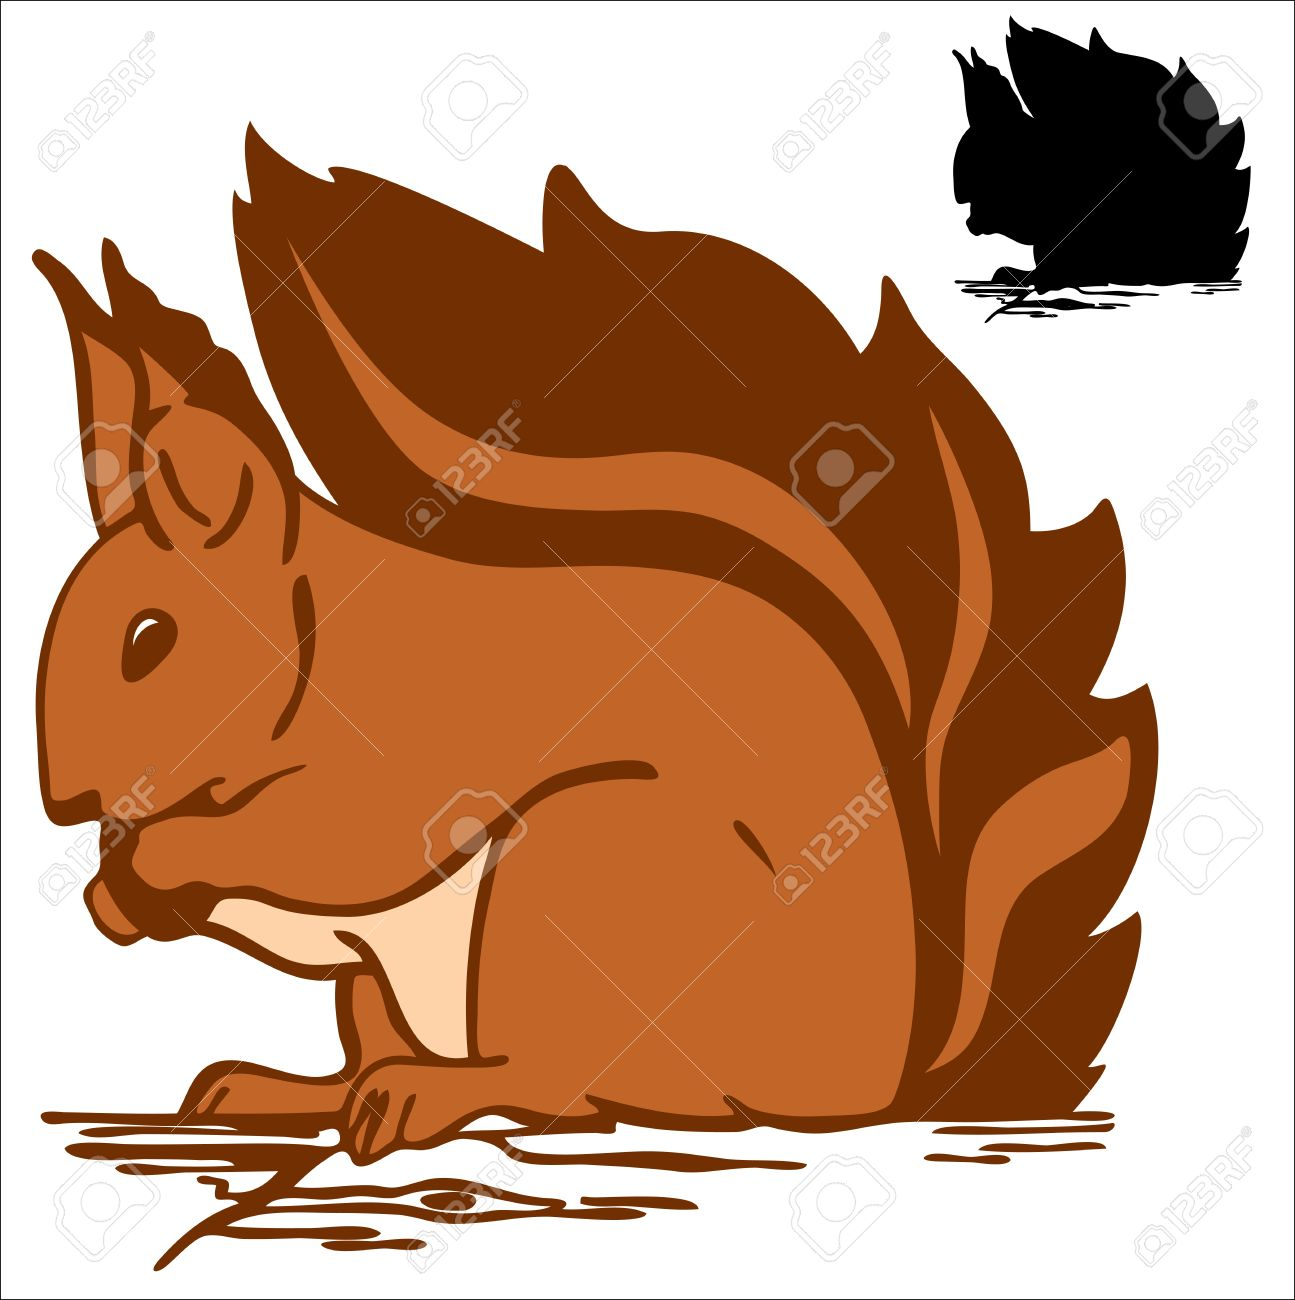 Red Squirrel clipart #10, Download drawings